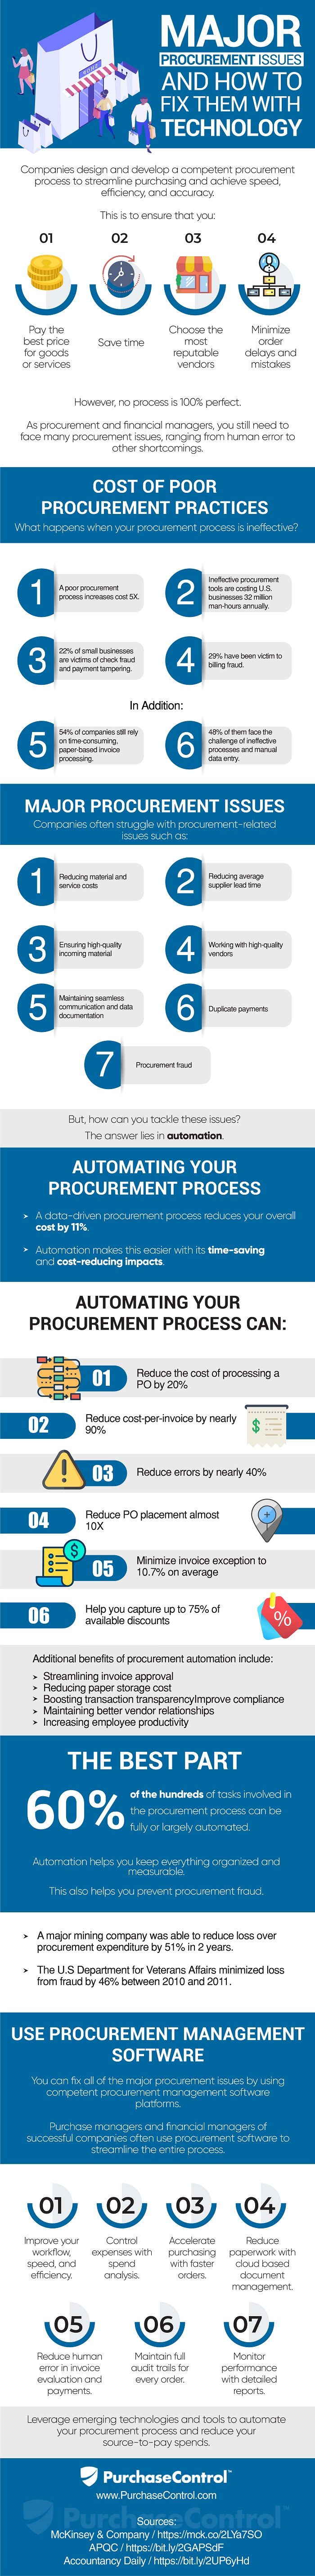 major procurement issues - how to fix them with technology